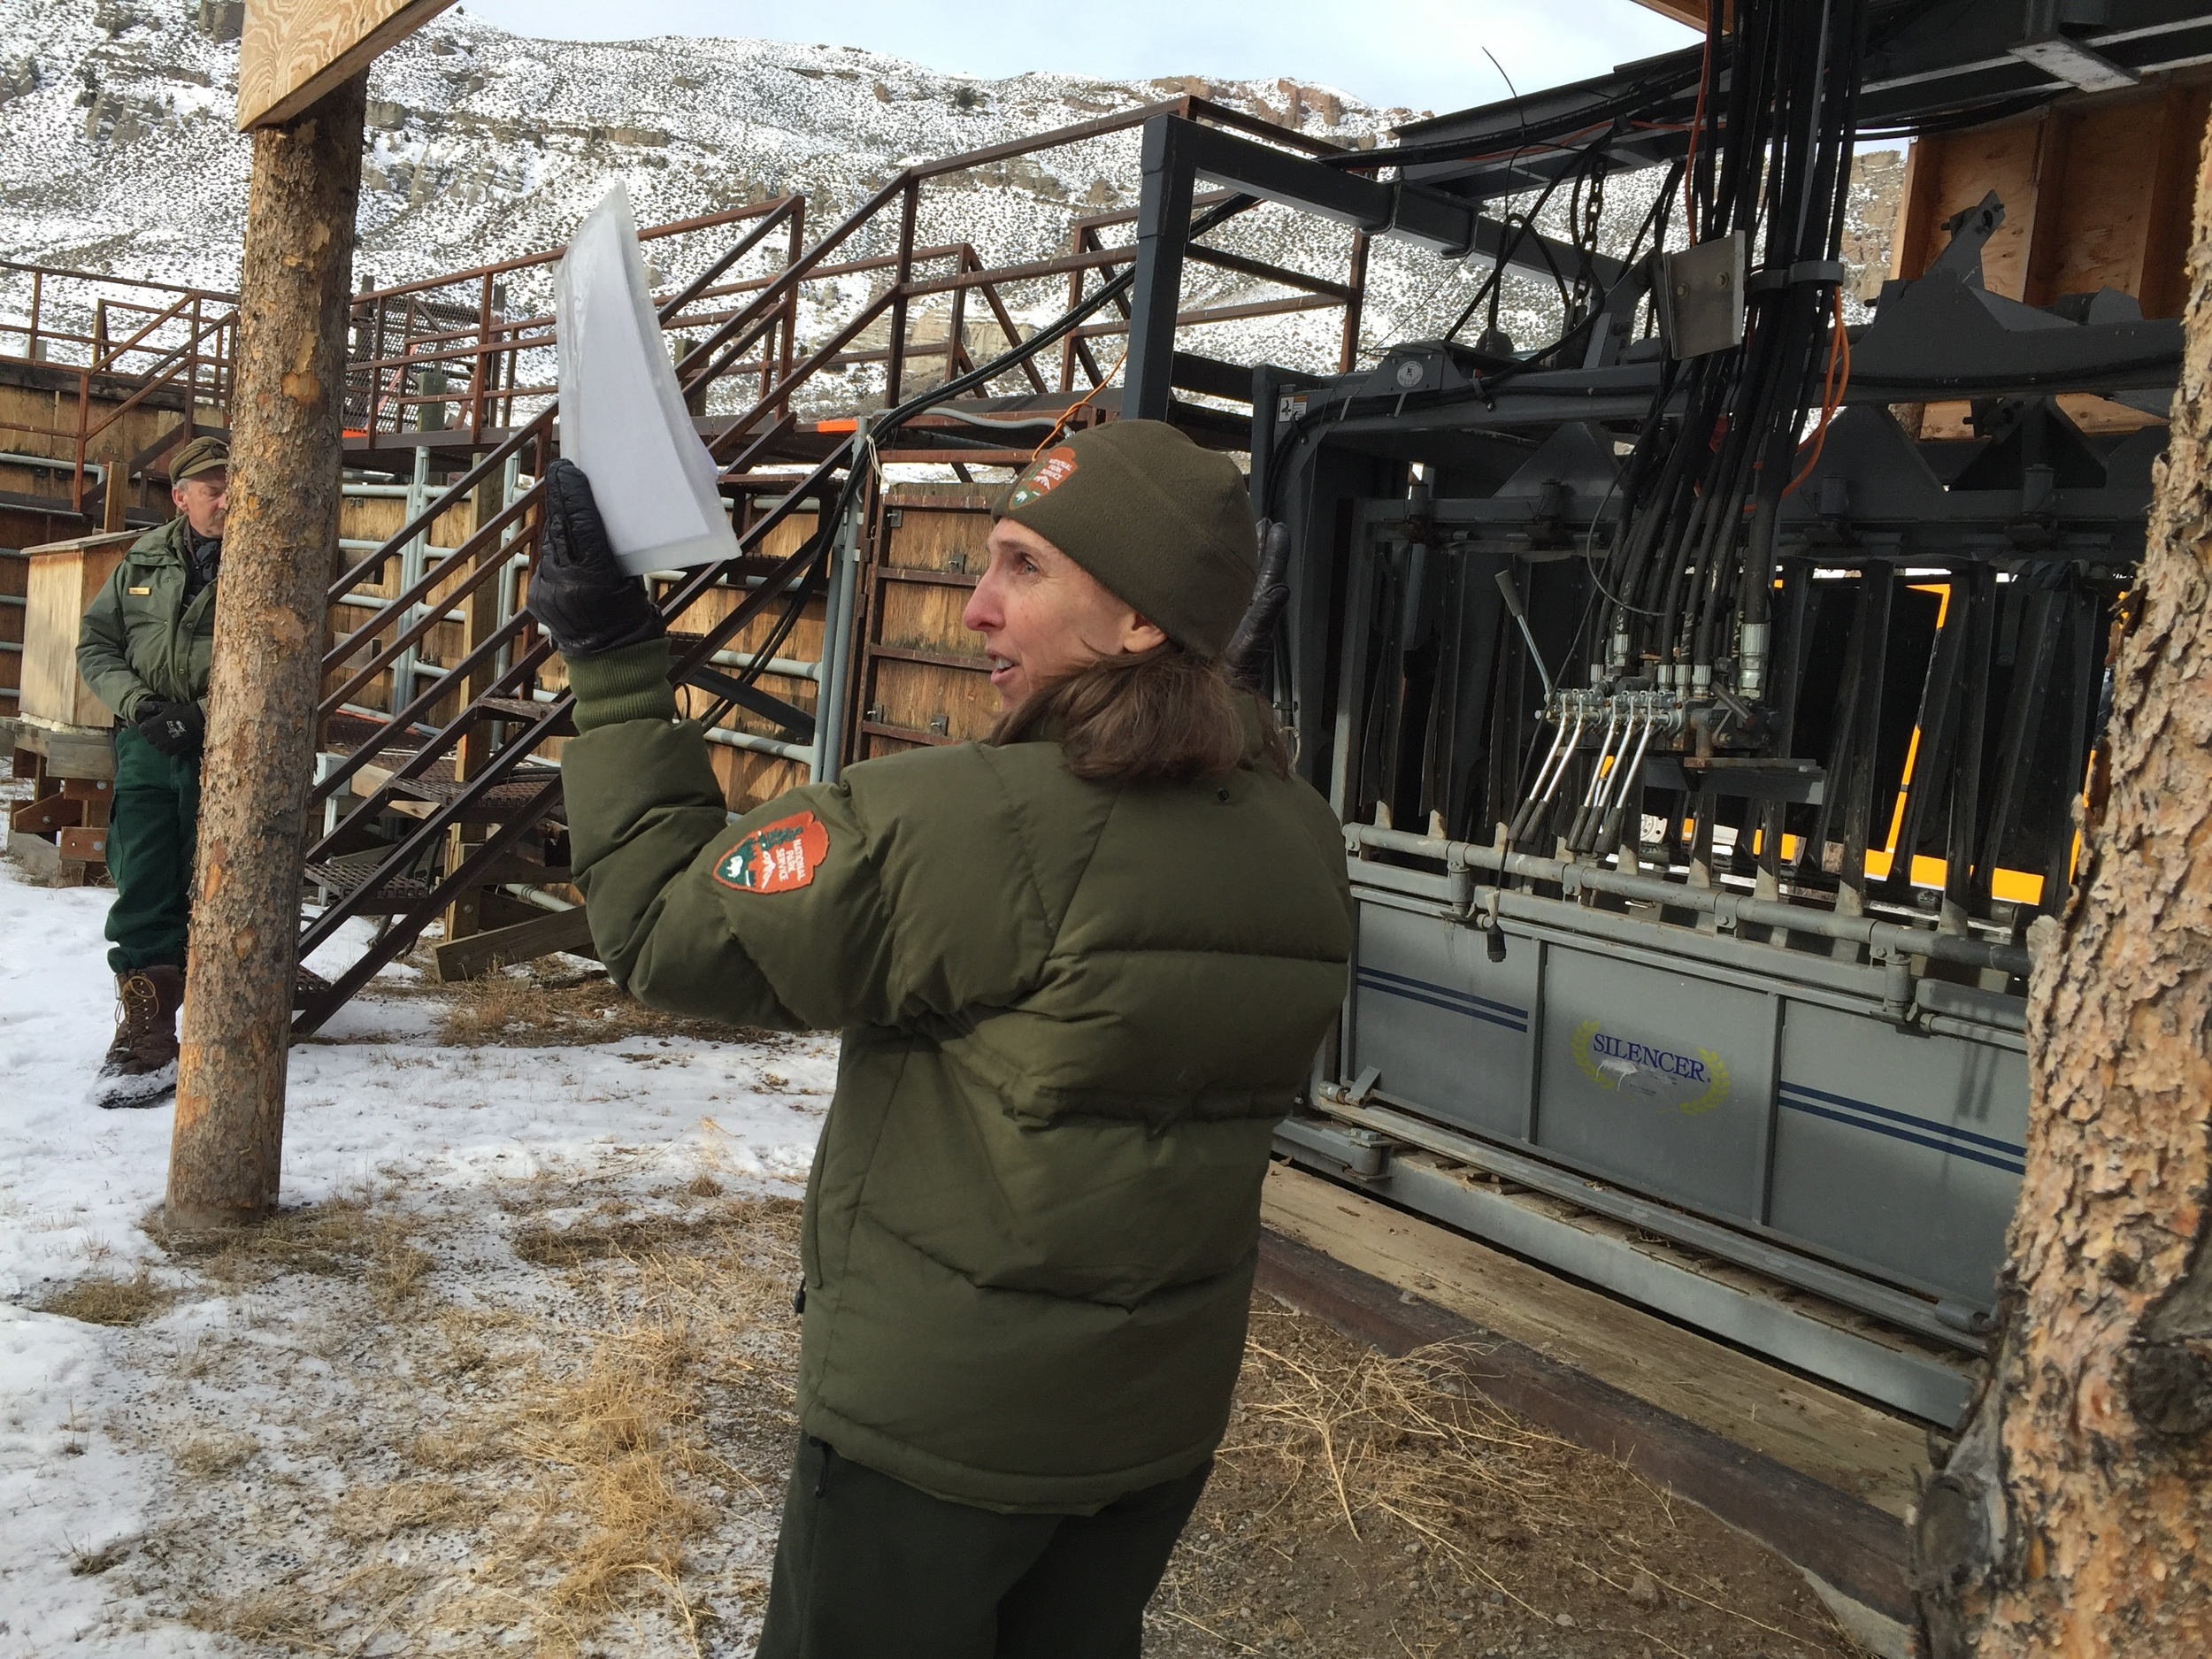 Jody Lyle of Yellowstone National Park gives a tour of the facility where bison are captured before being sent to slaughter.